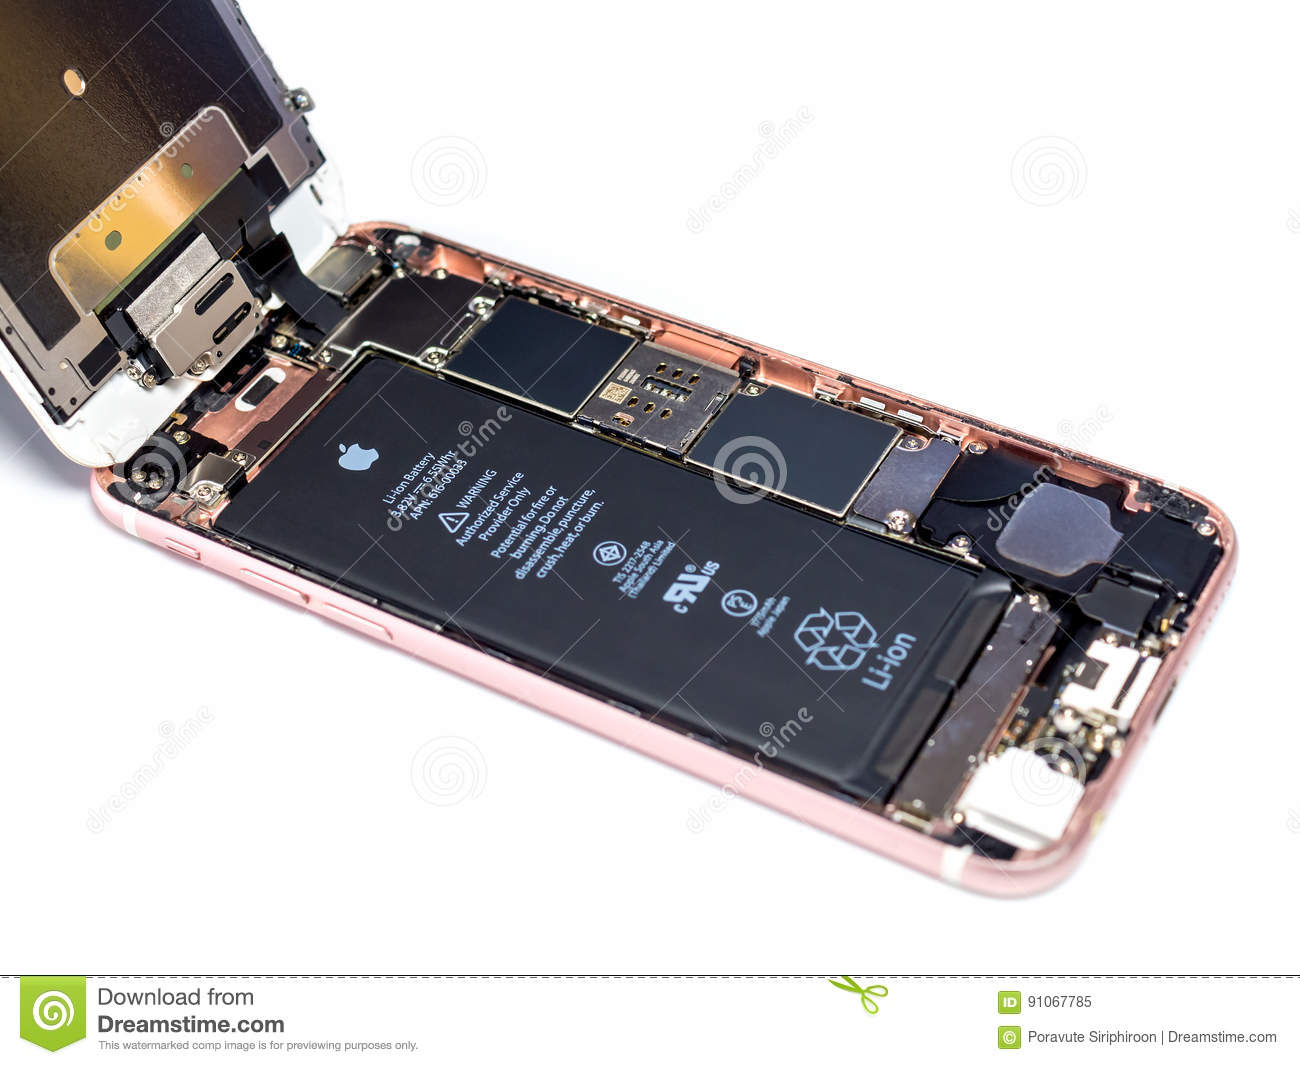 Apple iPhone 6S disassembled showing components inside